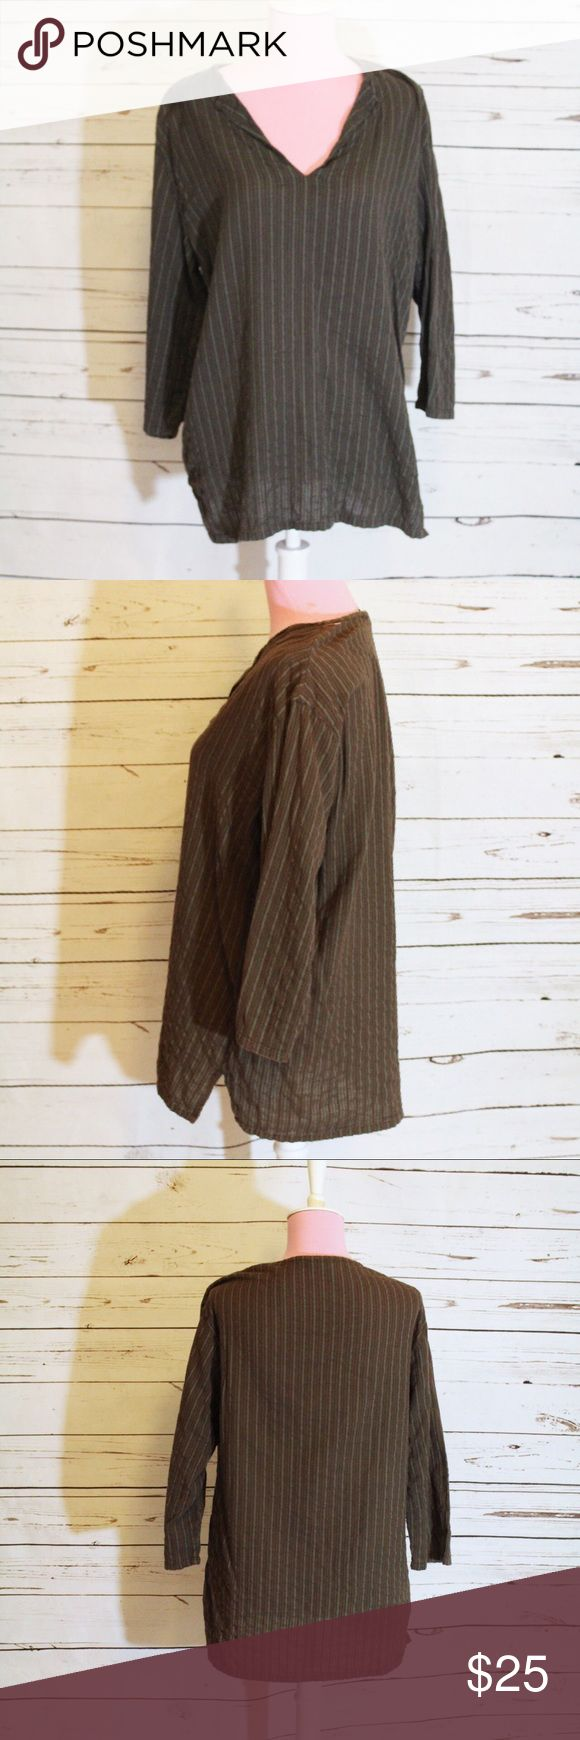 French Connection 3/4 Sleeve Pinstripe Shirt This is a 3/4 sleeve brown and green pinstrip shirt from French Connection. Size large. V-neck, Good used condition. French Connection Tops